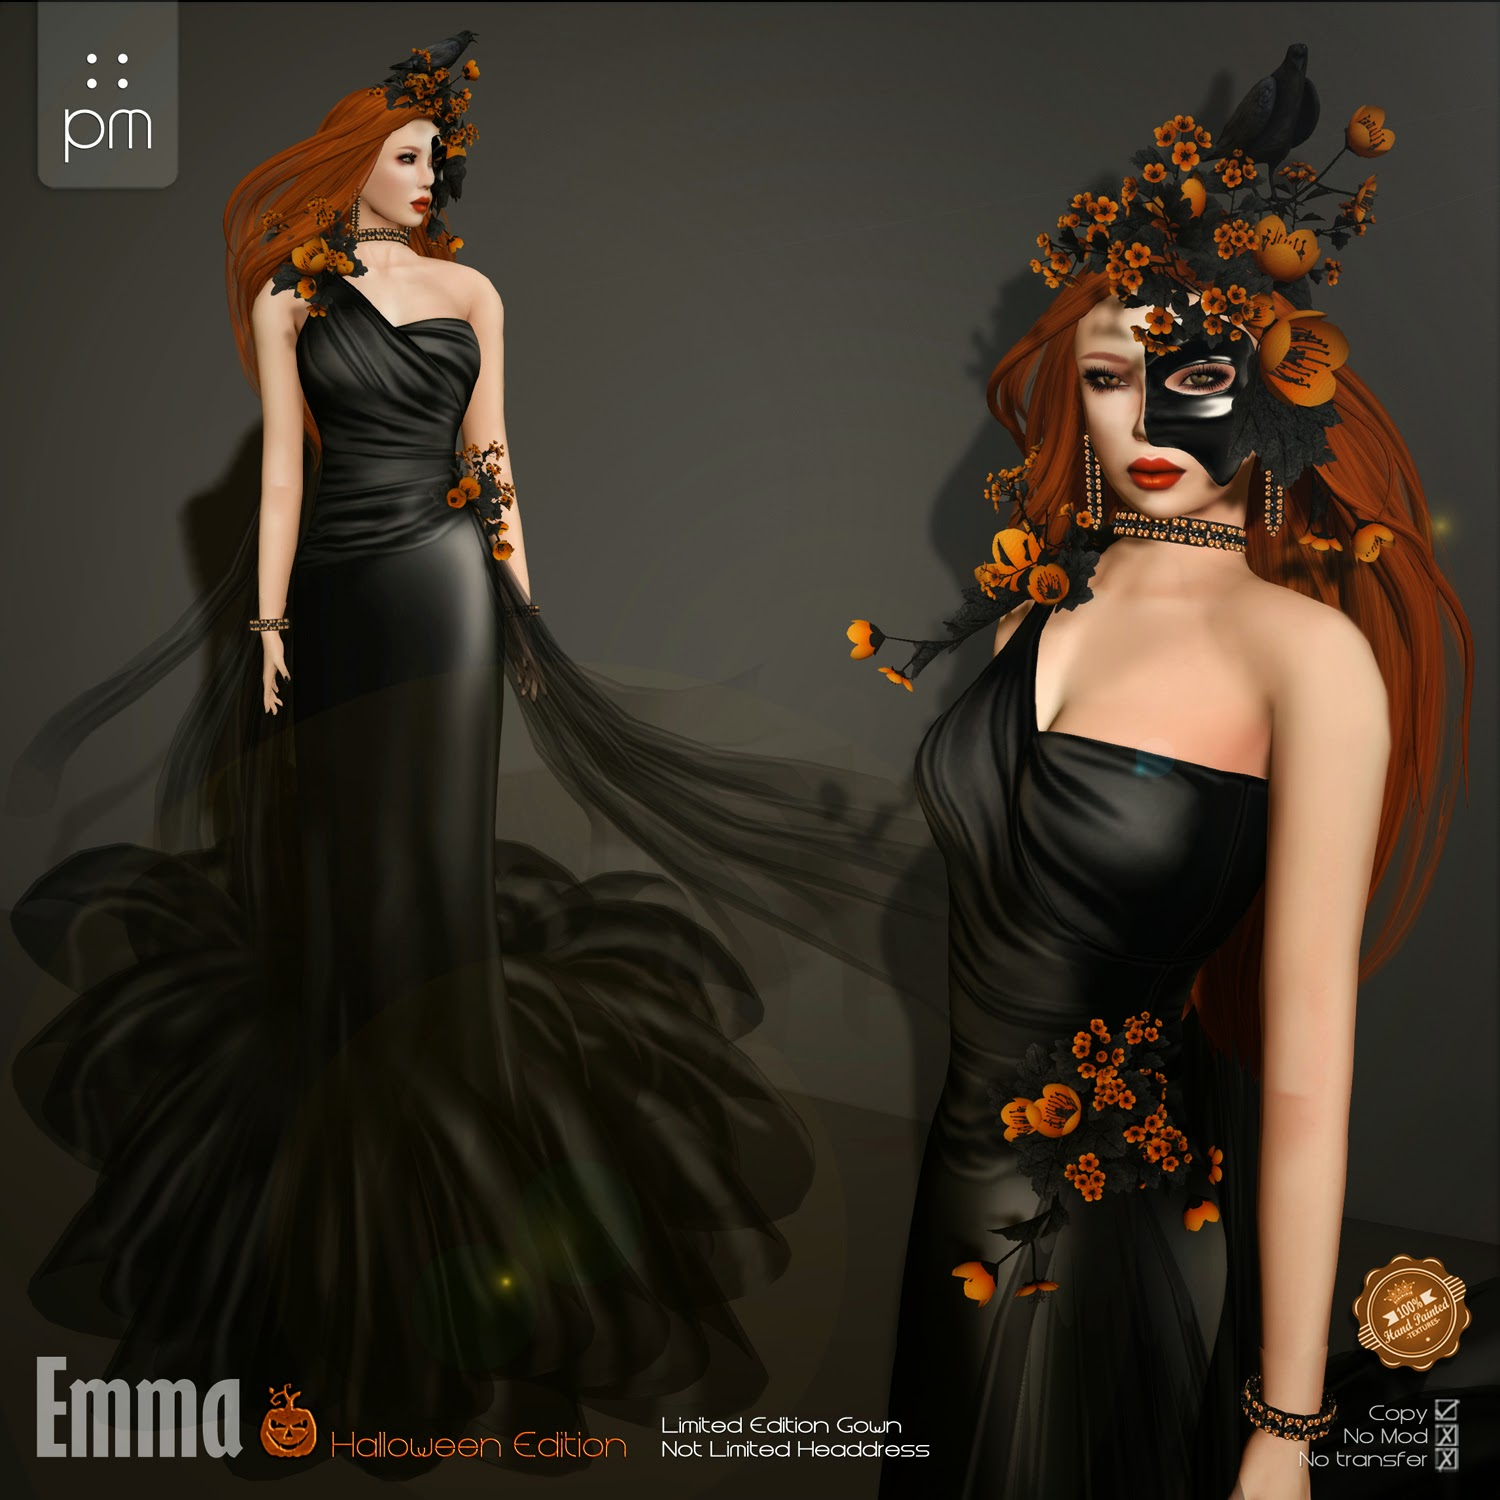 https://marketplace.secondlife.com/p/PM-Emma-Dress-Beautifully-Dead-MaskHeadpiece/6518829